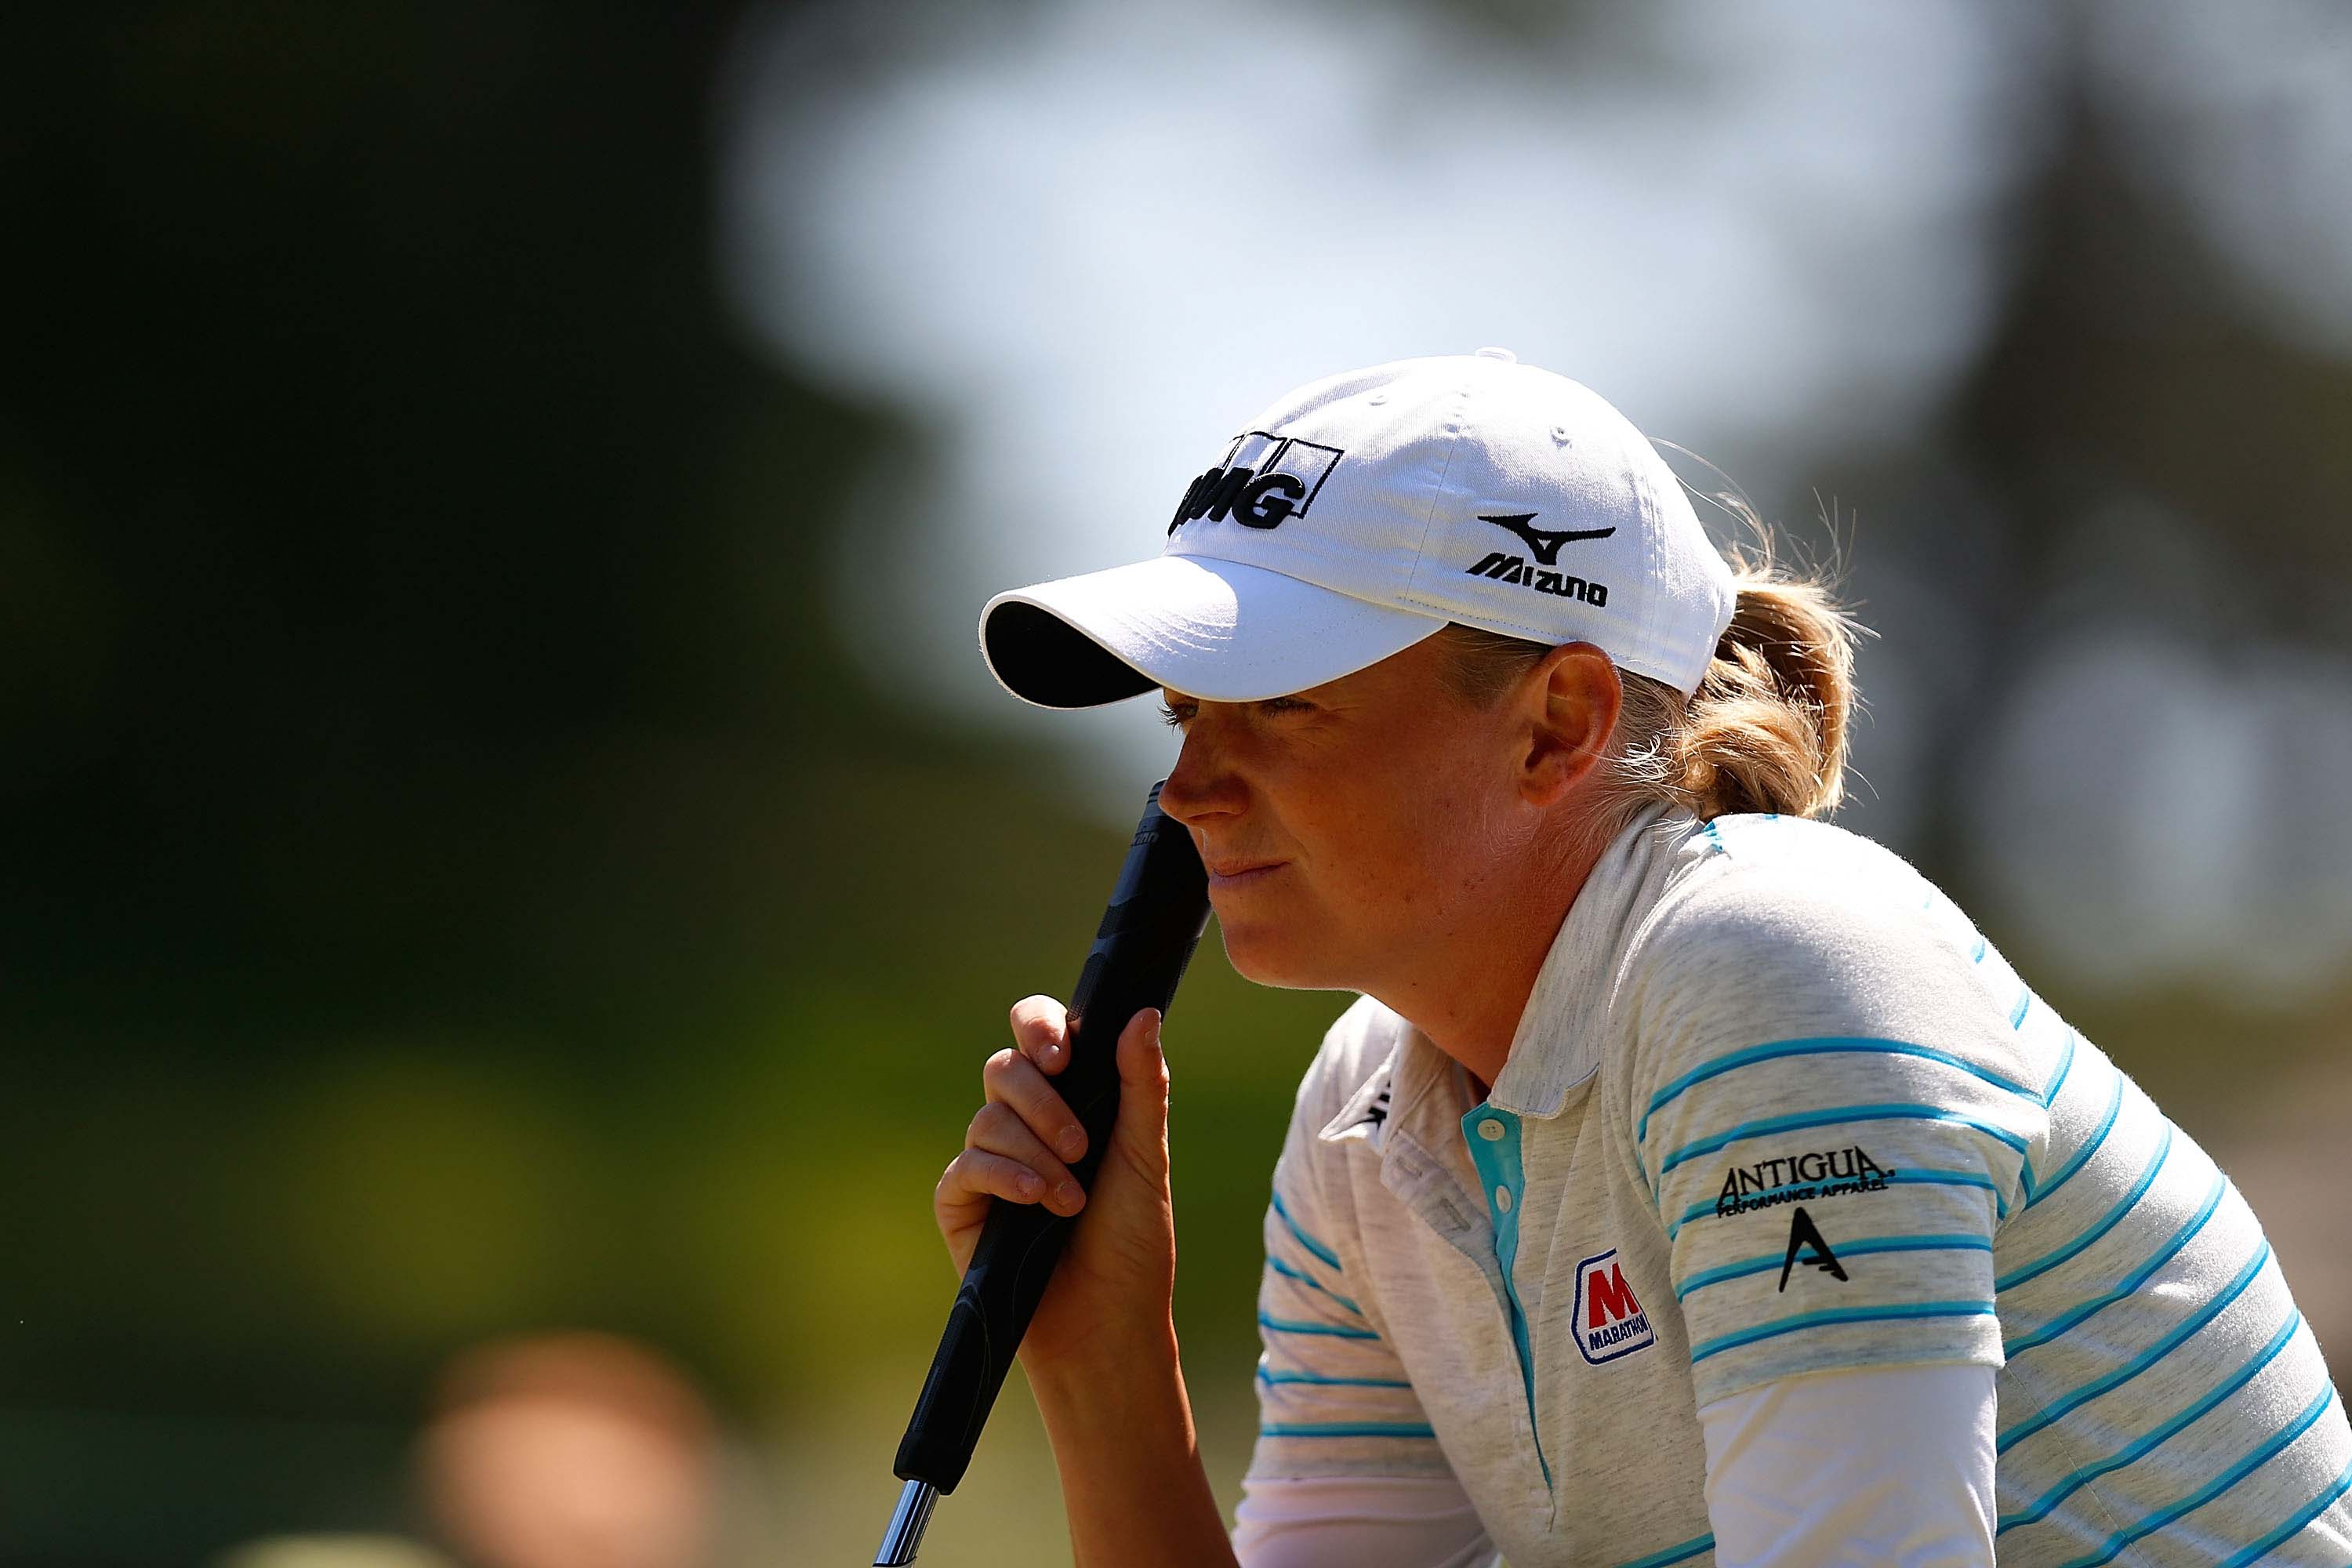 T-shirt worn by Stacy Lewis' 3-year-old nephew